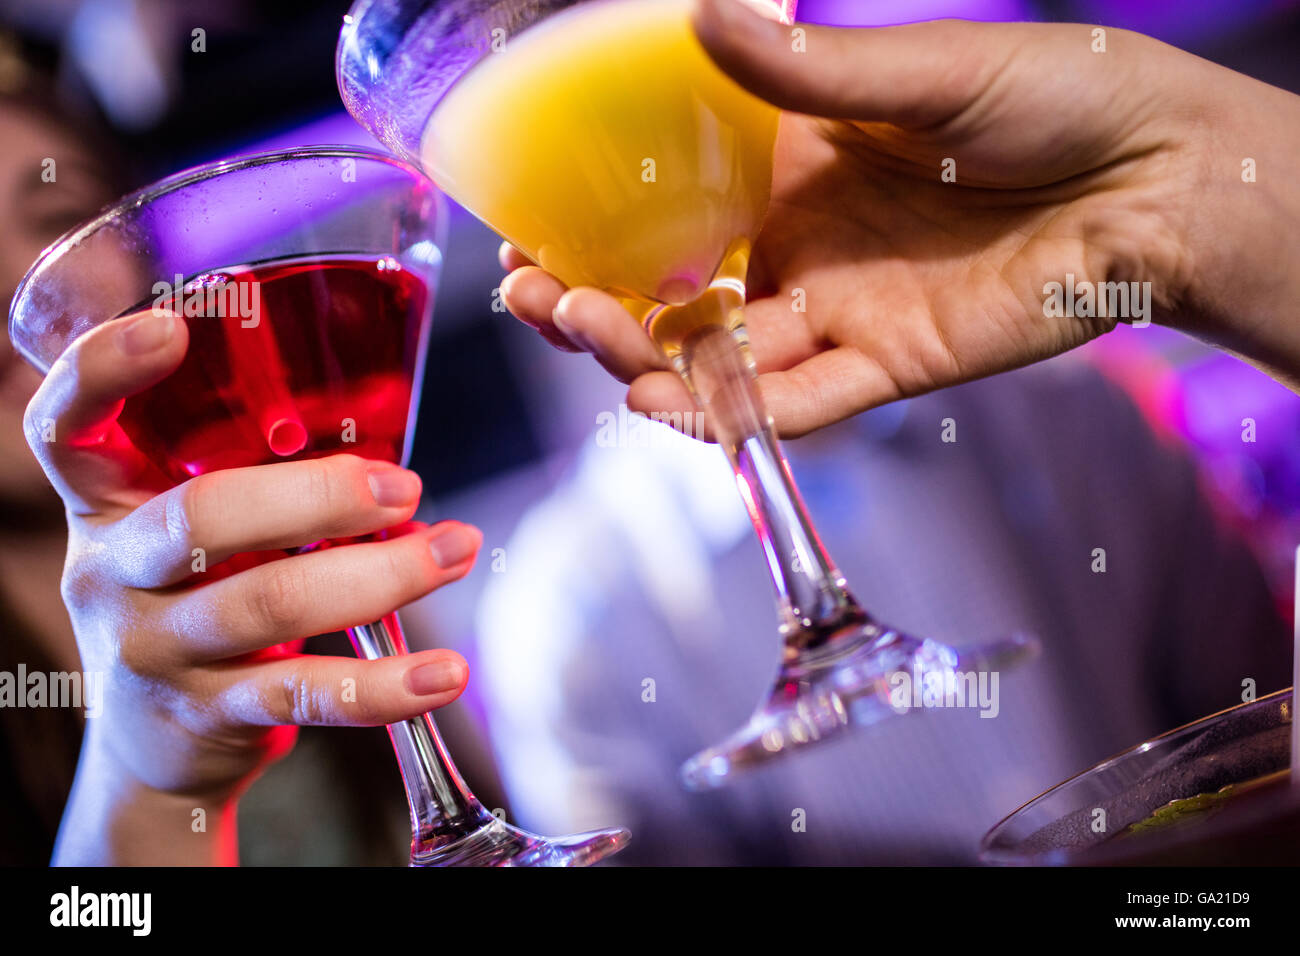 Friends toasting cocktail at bar counter - Stock Image